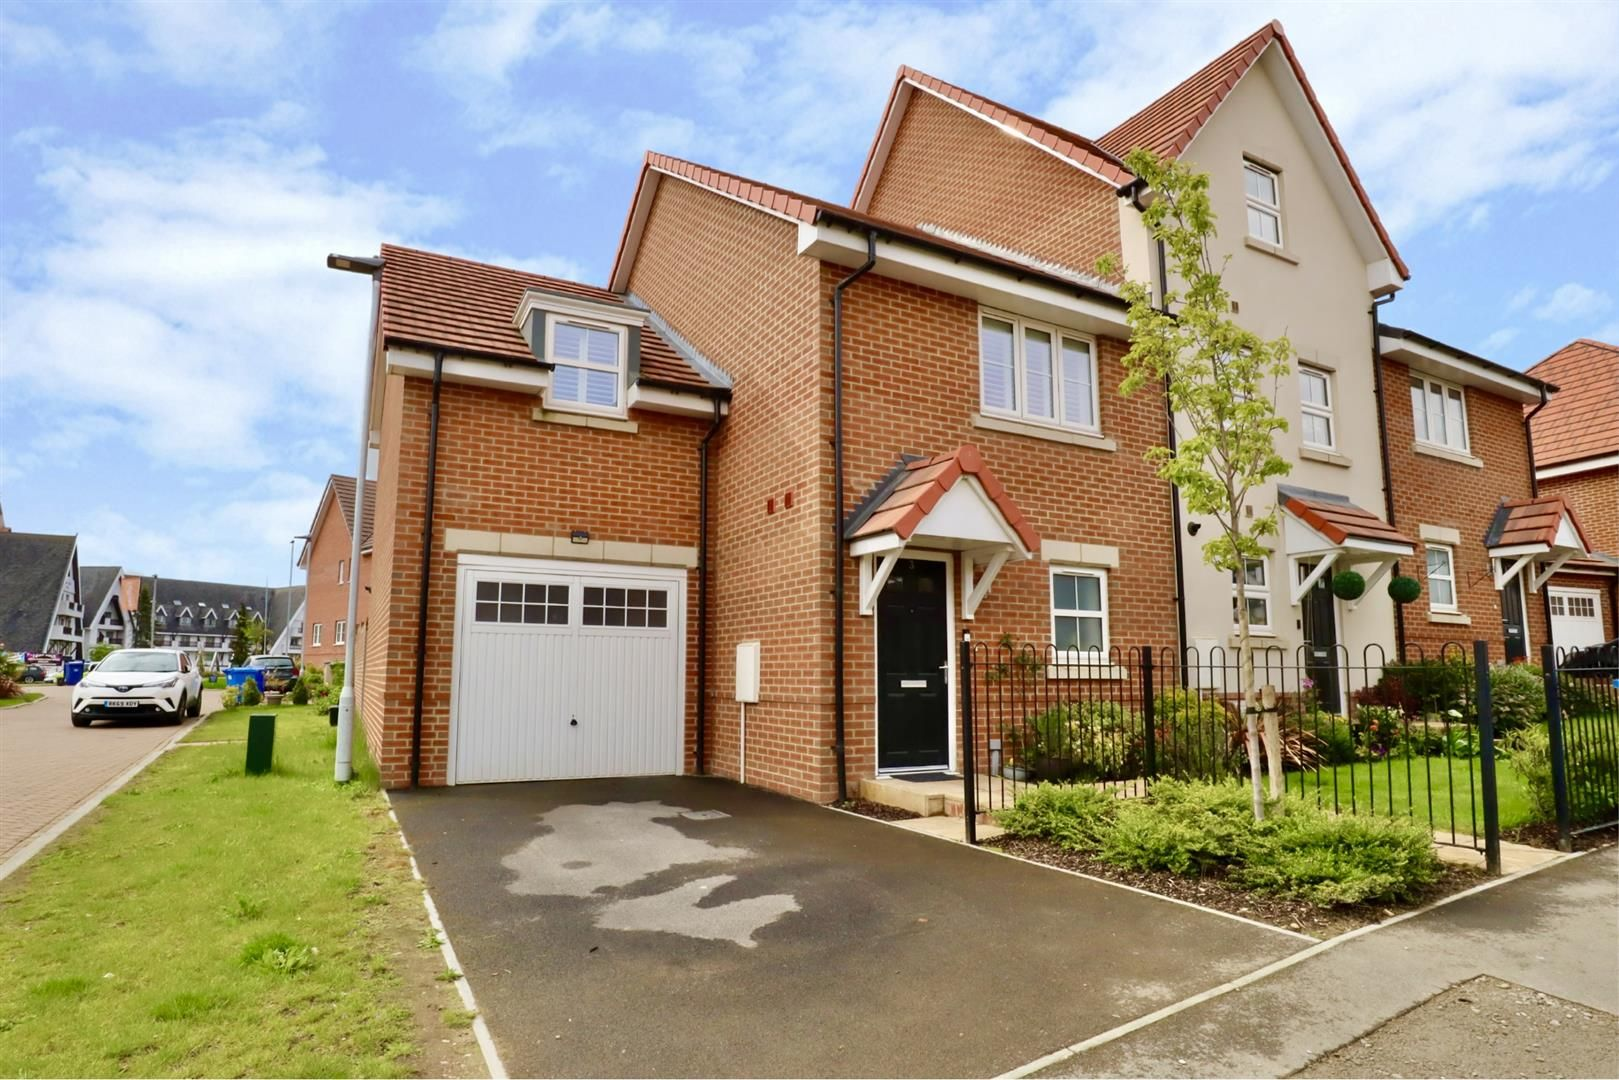 3 bed end of terrace for sale, RG42